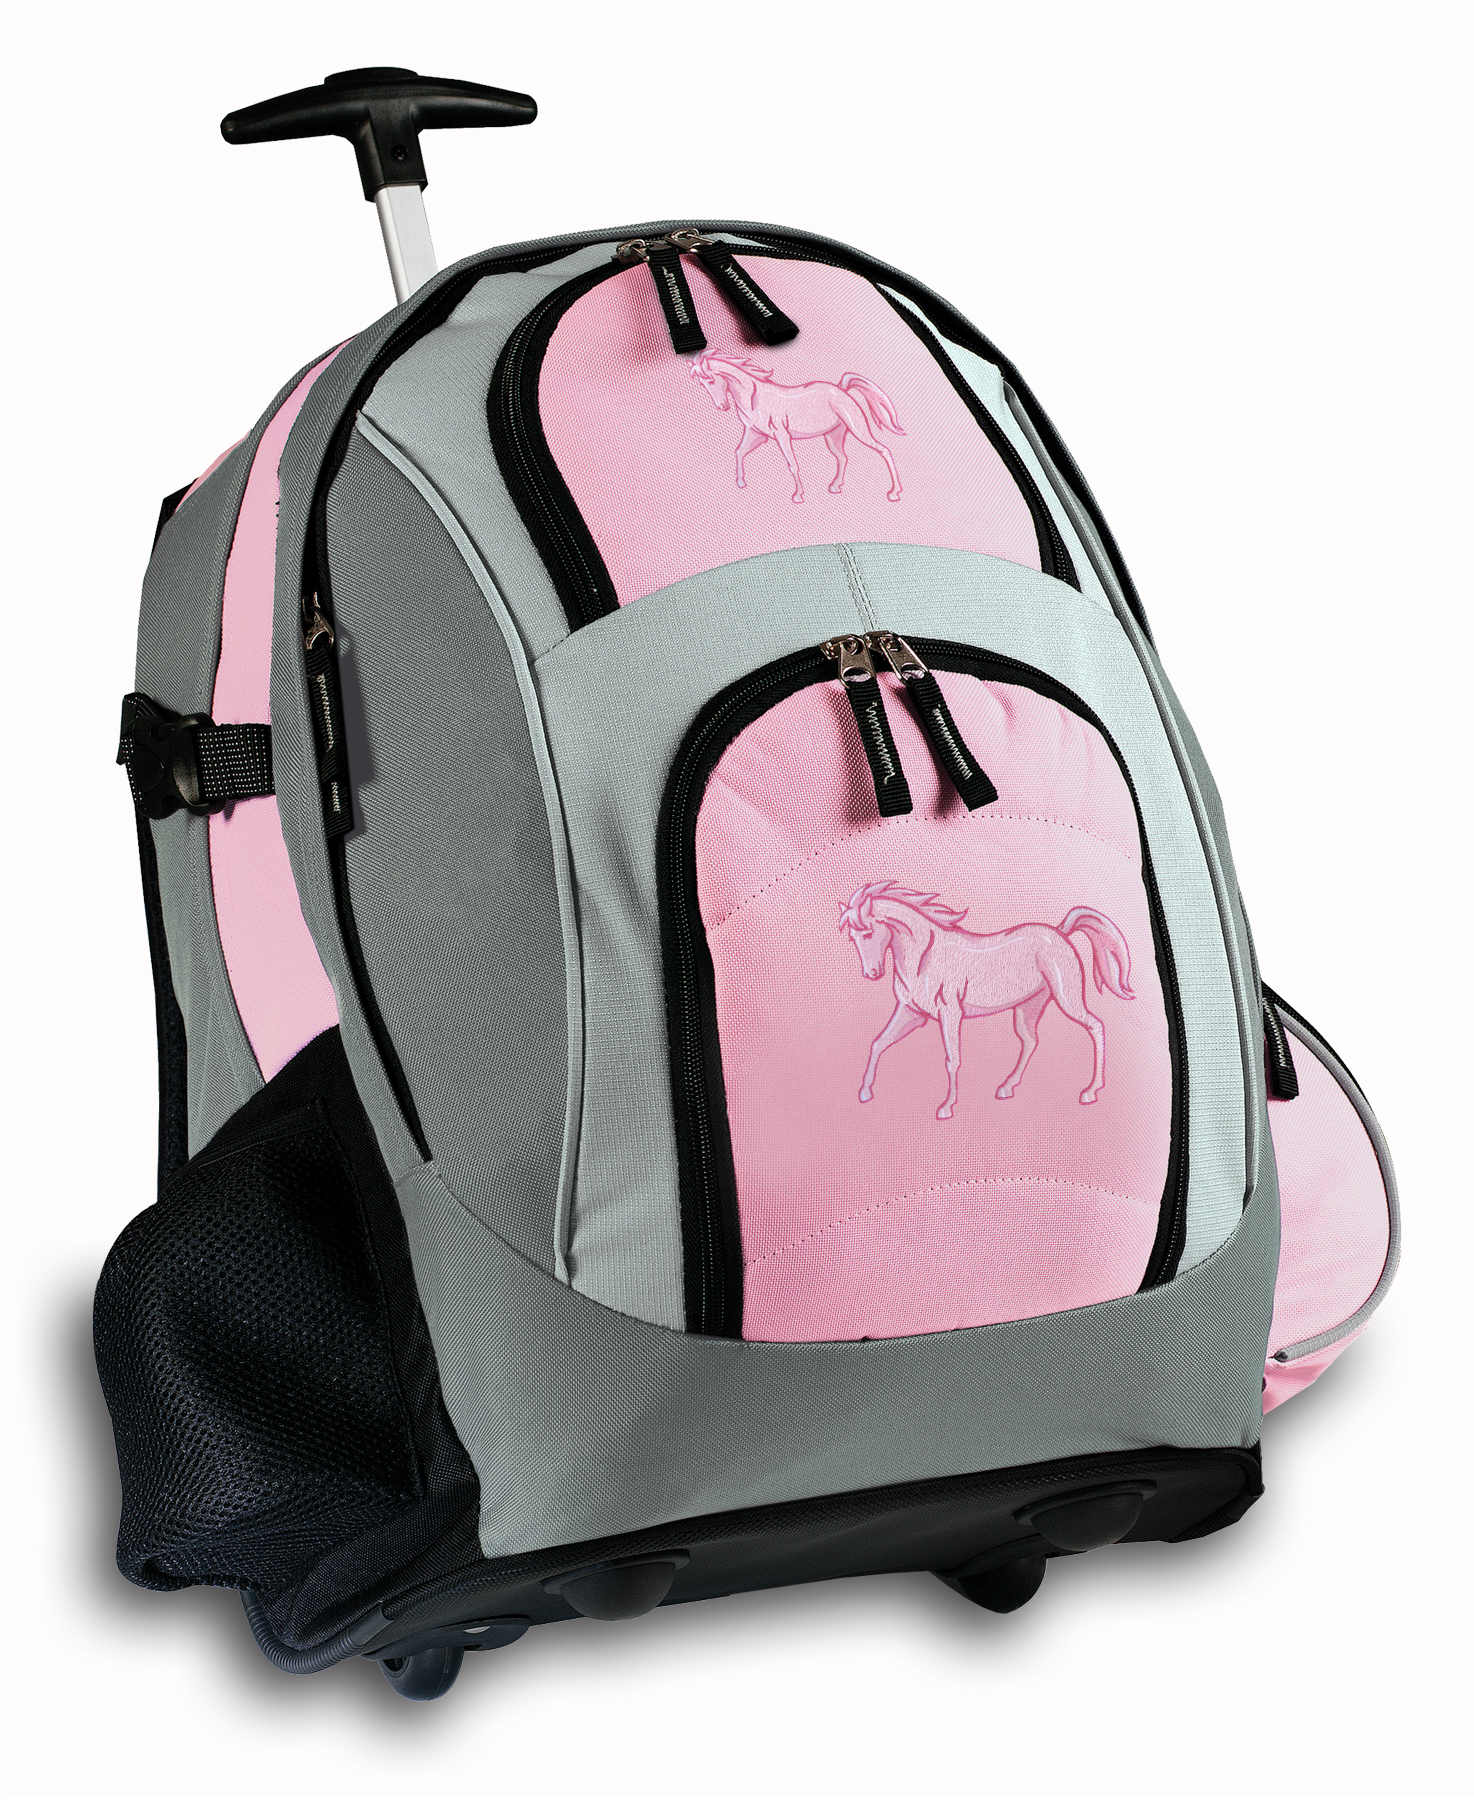 Rolling Backpacks For School xWGBuSk3